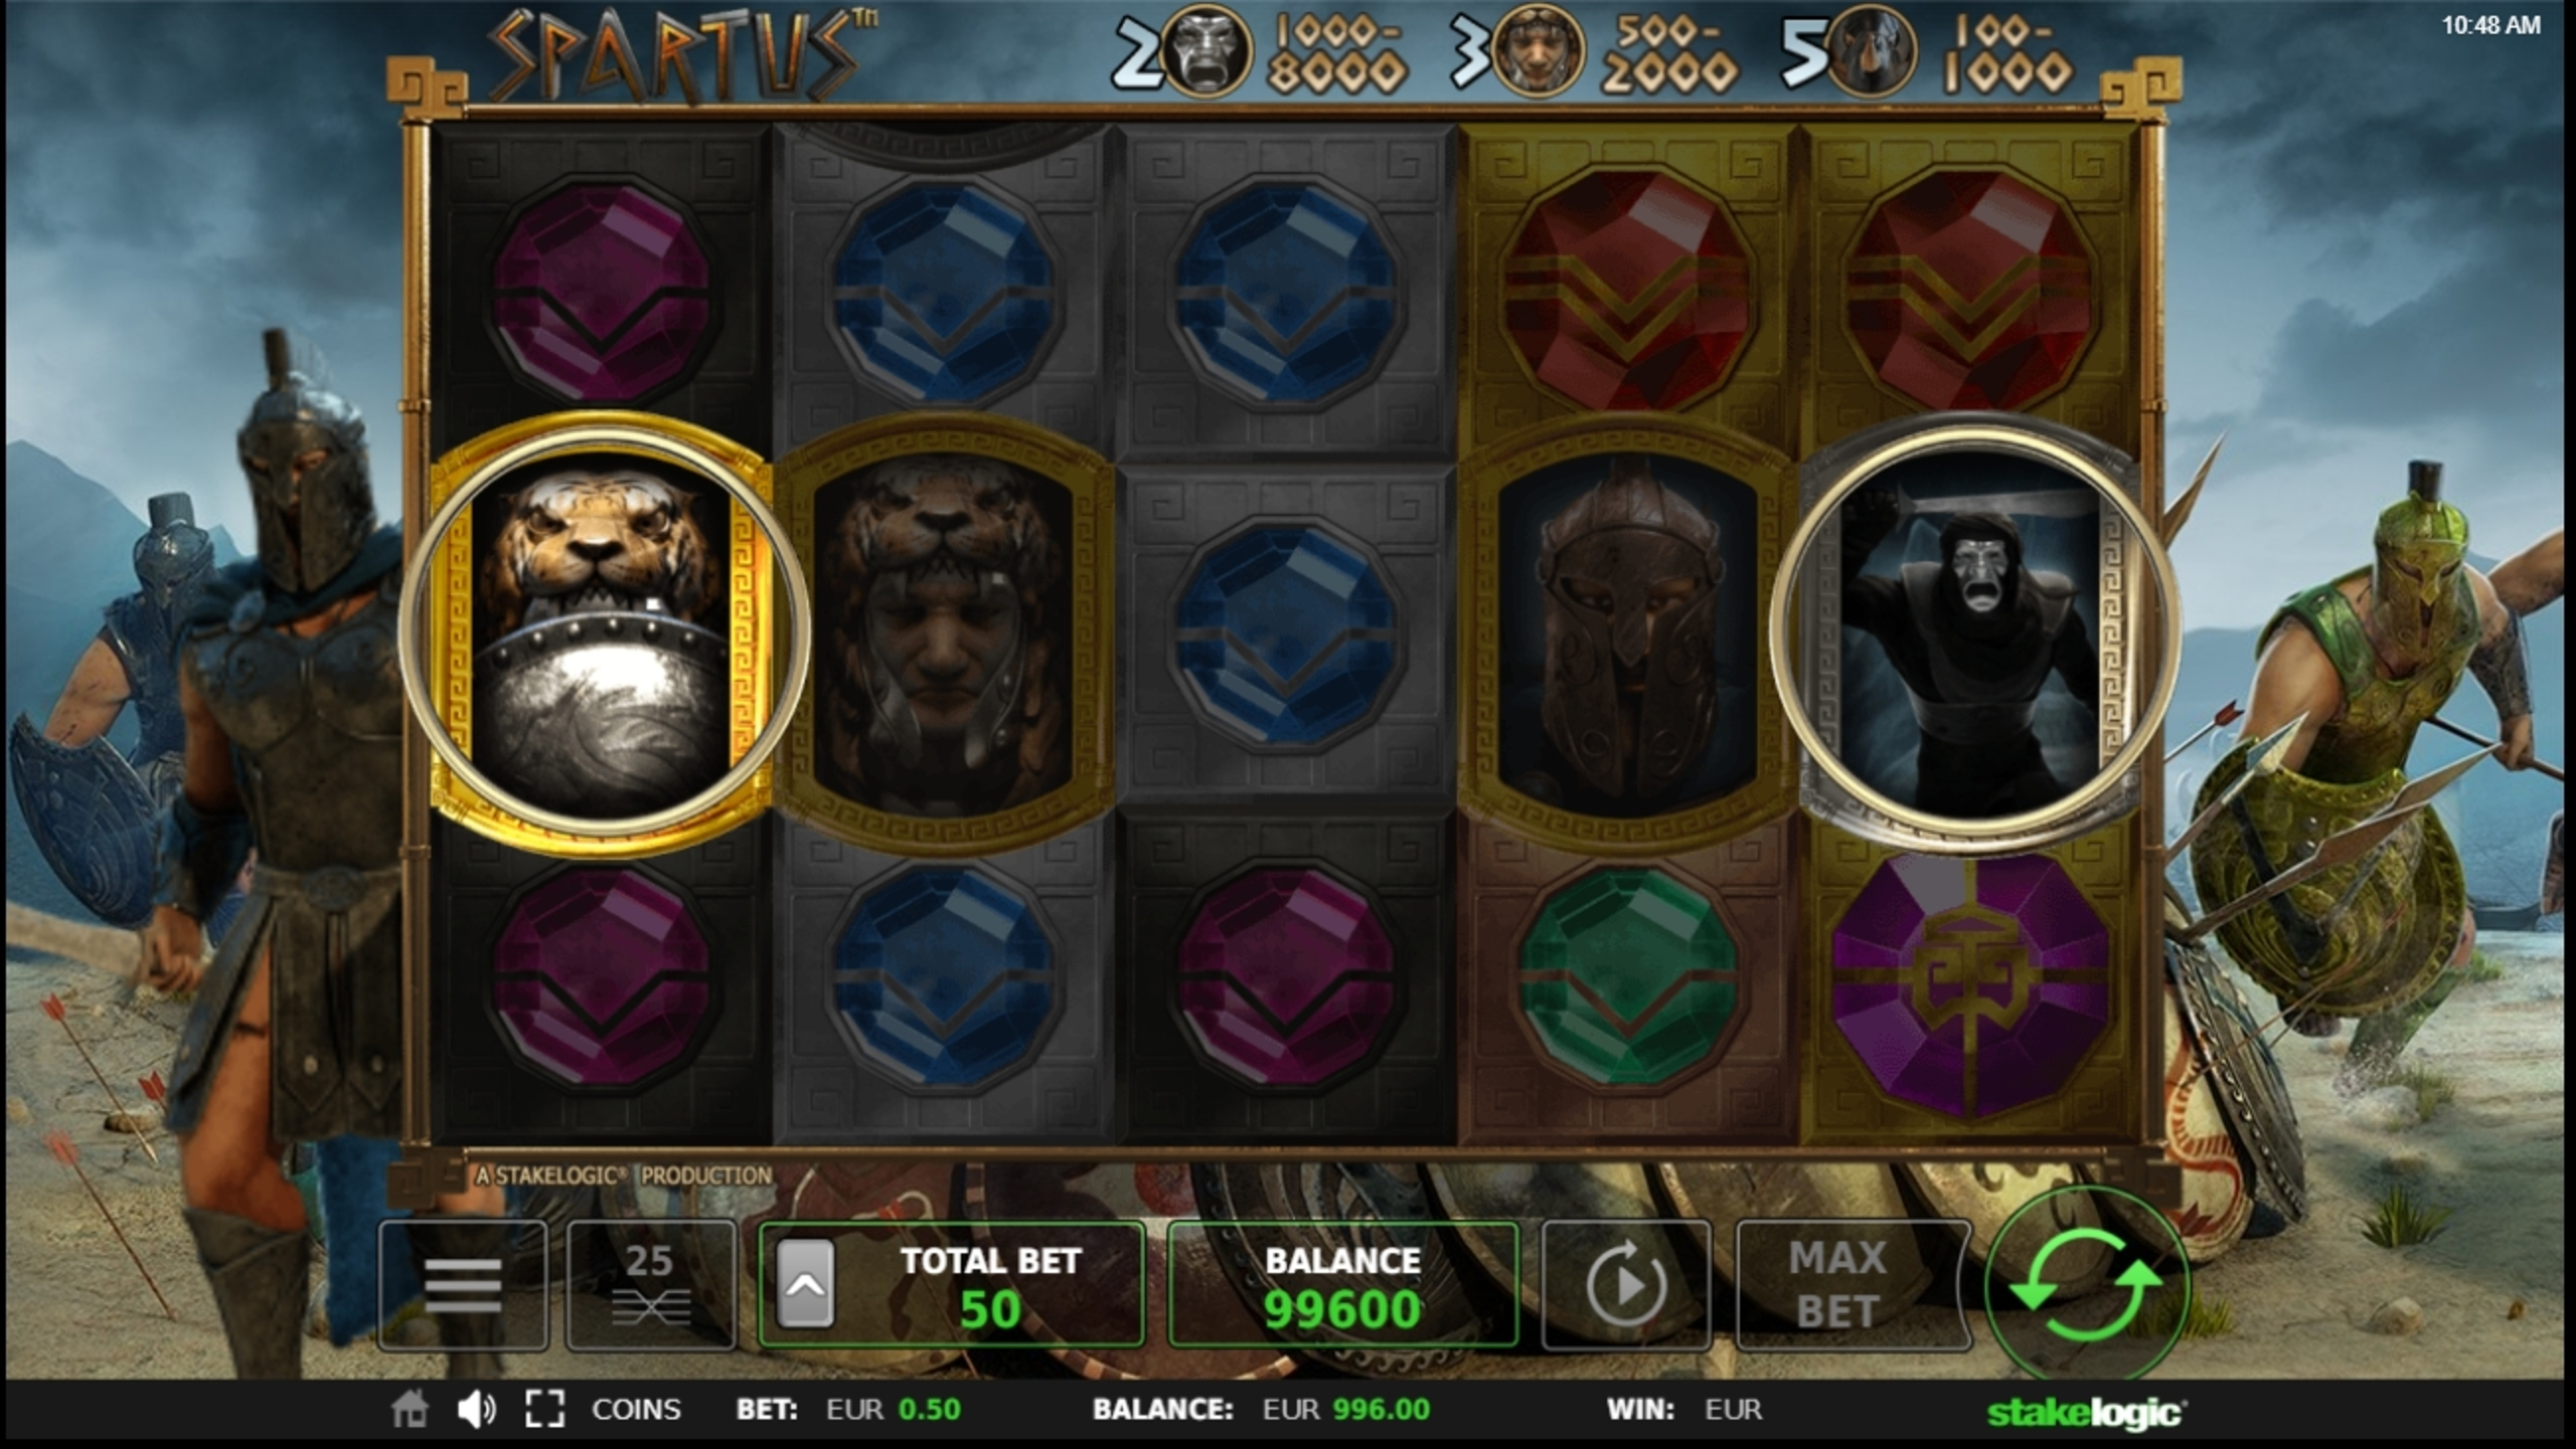 Win Money in Spartus Free Slot Game by StakeLogic